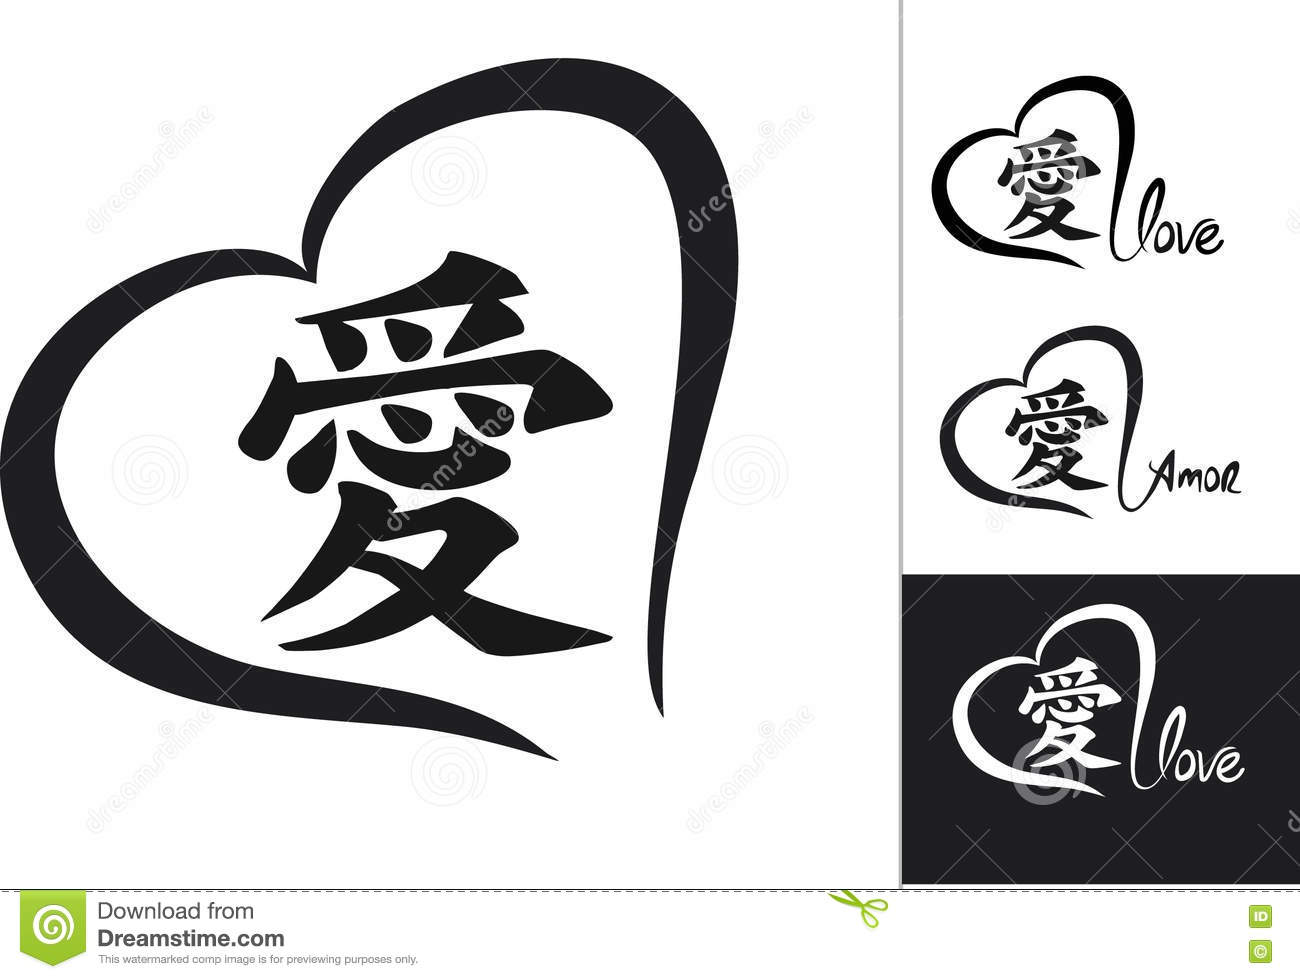 symbole de kanji pour l 39 amour dans le japonais. Black Bedroom Furniture Sets. Home Design Ideas